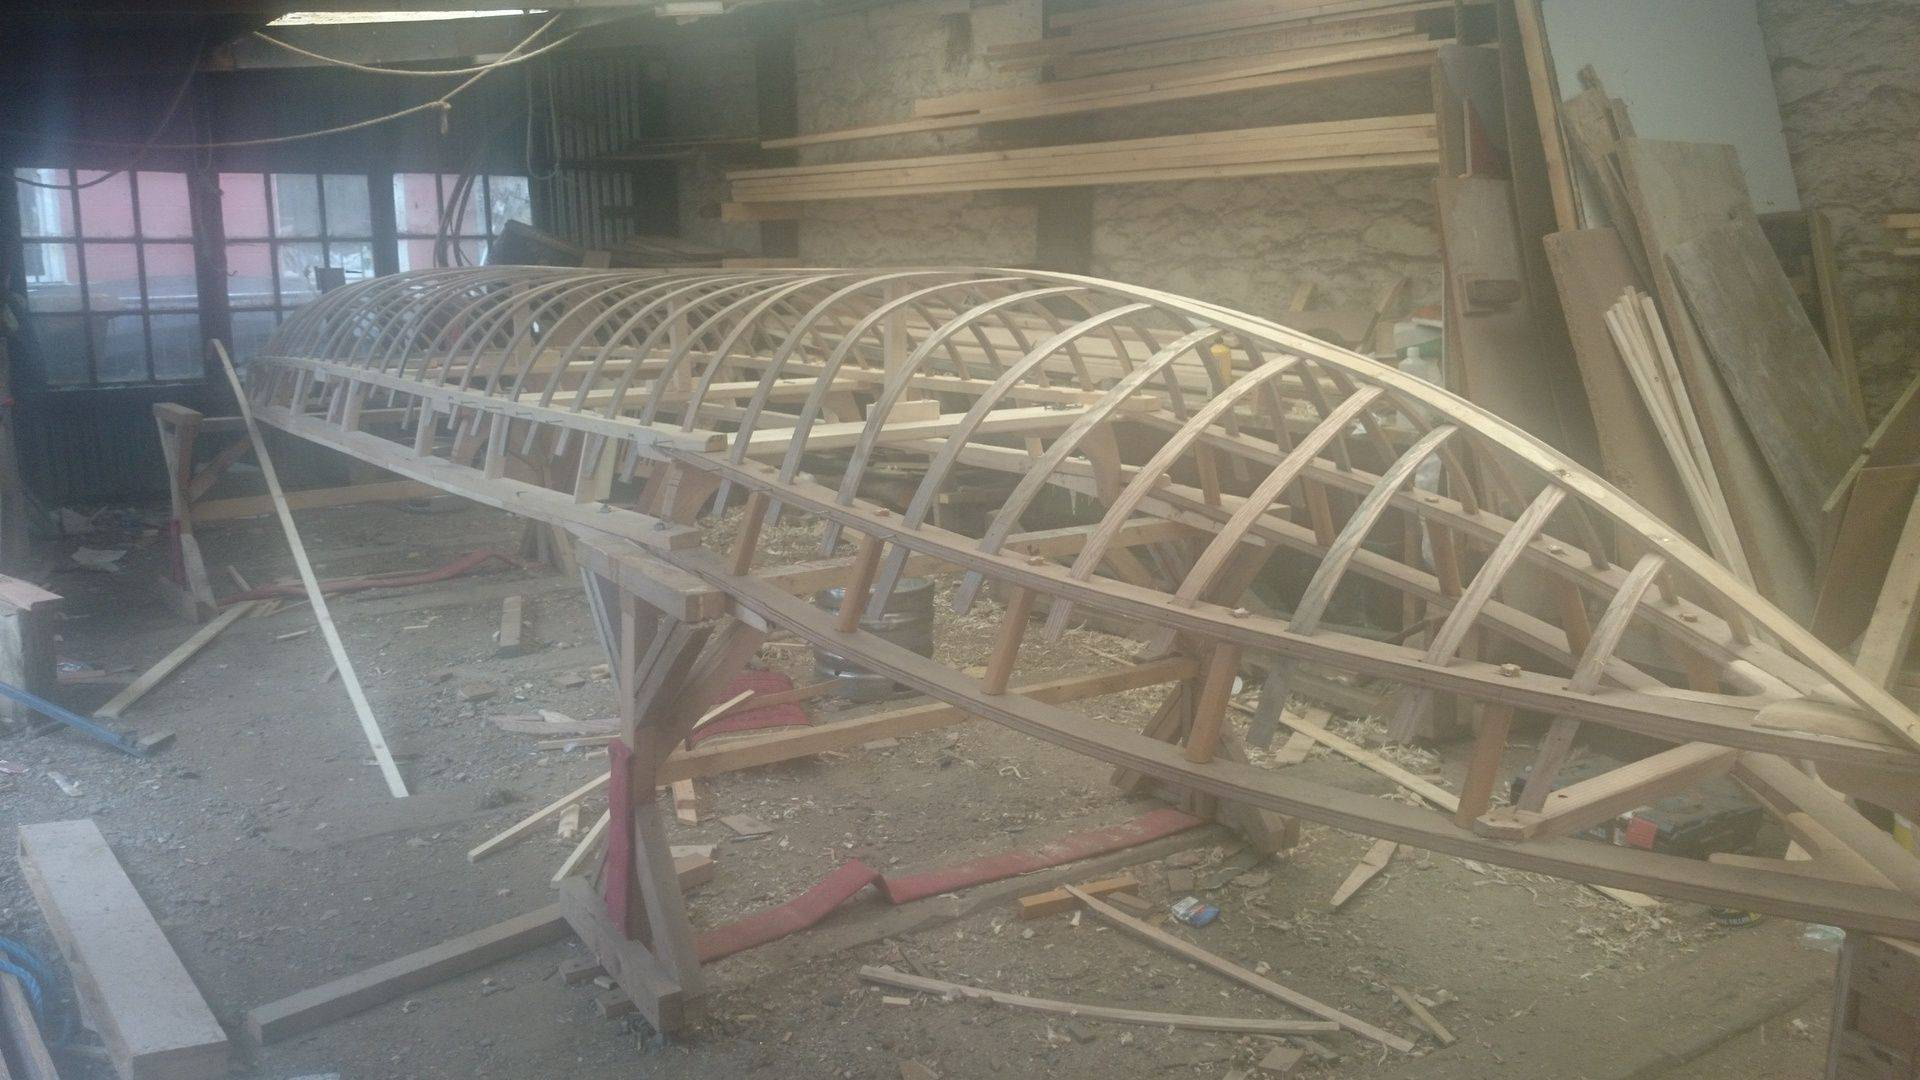 Currach being made in Cork